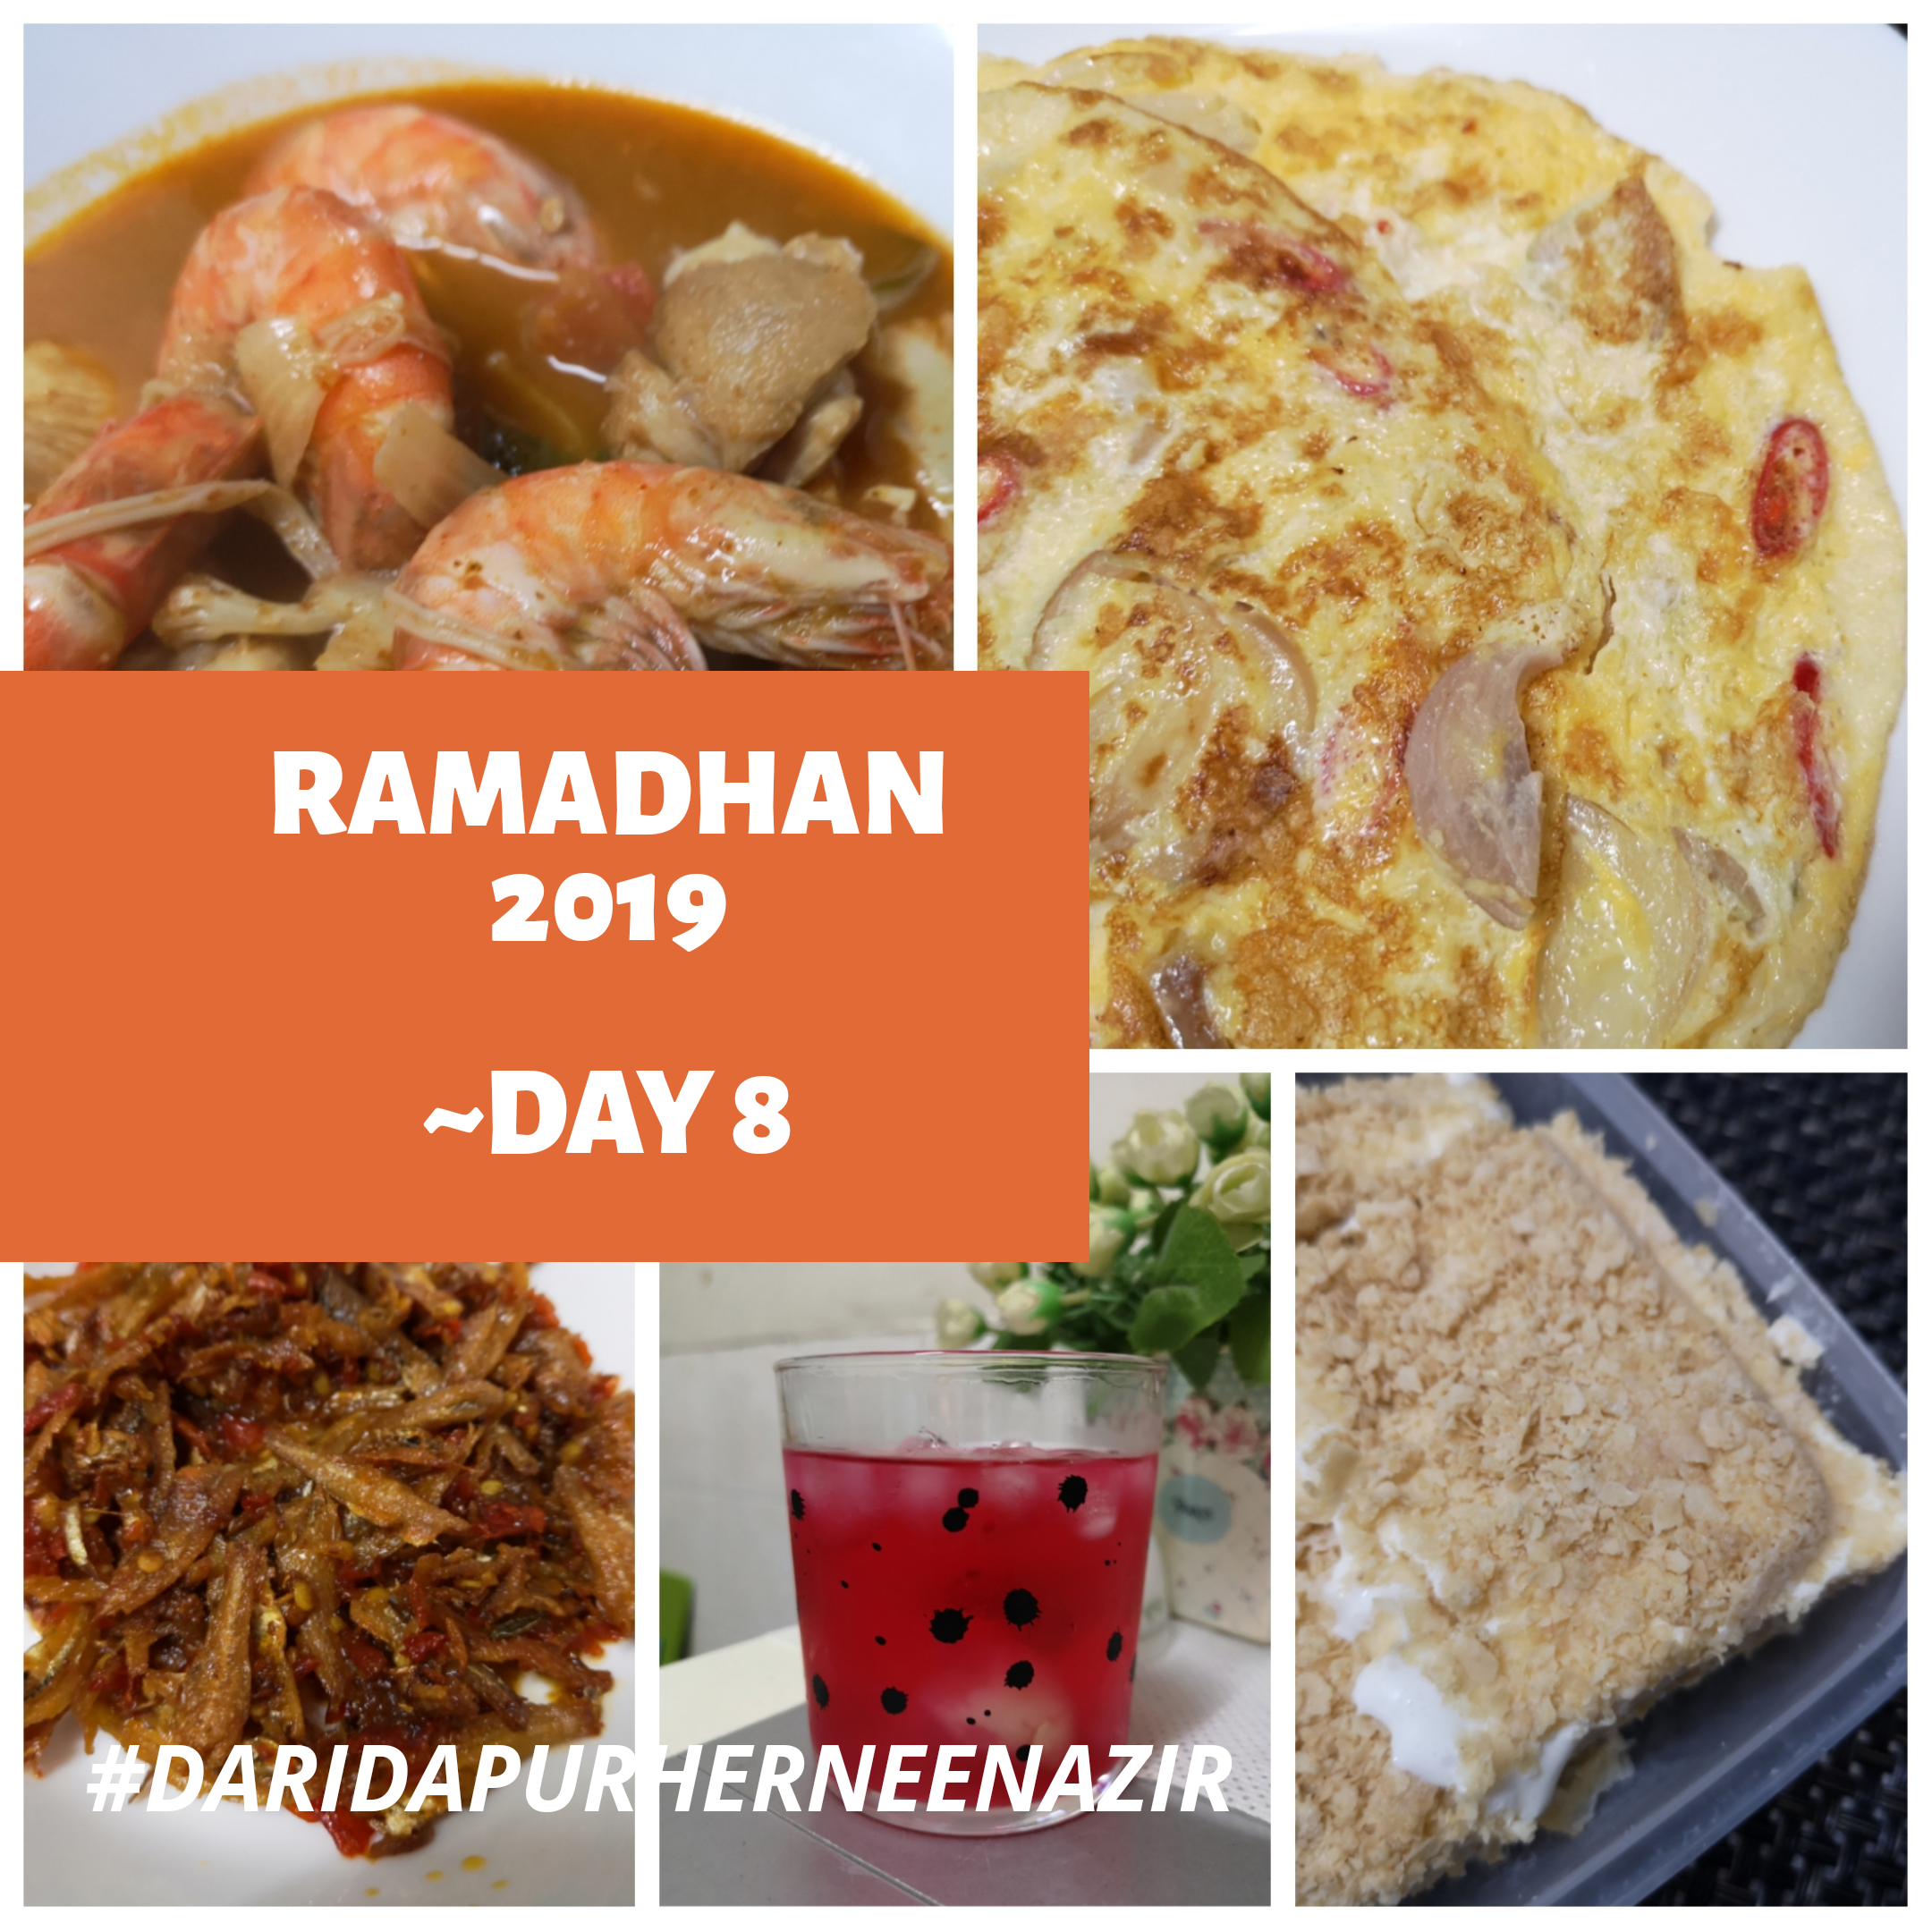 Ramadhan 2019 – Day 8